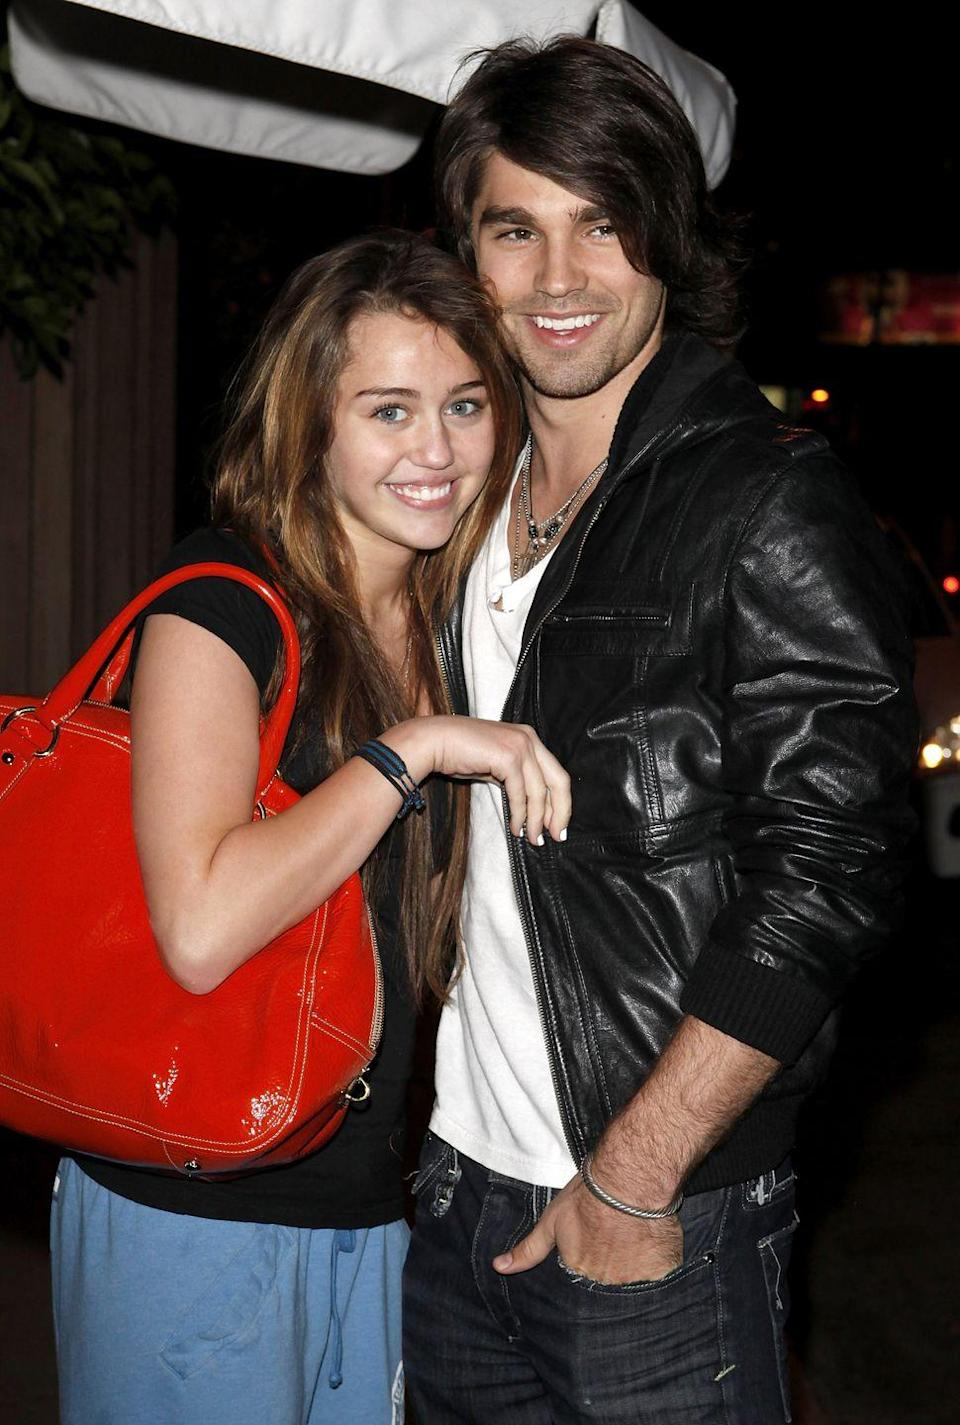 """<p>Then 16-year-old Cyrus found love with 20-year-old Justin Gaston, a contestant on her dad's reality show <em>Nashville Star</em>. They dated for nine months before splitting in June 2009. <a href=""""https://www.eonline.com/news/128212/miley_cyrus_justin_gaston_are_totally"""" rel=""""nofollow noopener"""" target=""""_blank"""" data-ylk=""""slk:Sources told E!"""" class=""""link rapid-noclick-resp"""">Sources told E!</a> at the time that Cyrus's newfound friendship with Jonas may have contributed to the breakup. """"She obviously has been hanging out with Nick again a lot, and Justin was cool with it at first, as long as it was just a cool, friendly thing,"""" the insider said. """"She didn't cheat, but I guess Nick was trying to get her back the whole time."""" Then, Cyrus jetted to Savannah, Georgia to film <em>The Last Song</em>. <br></p>"""